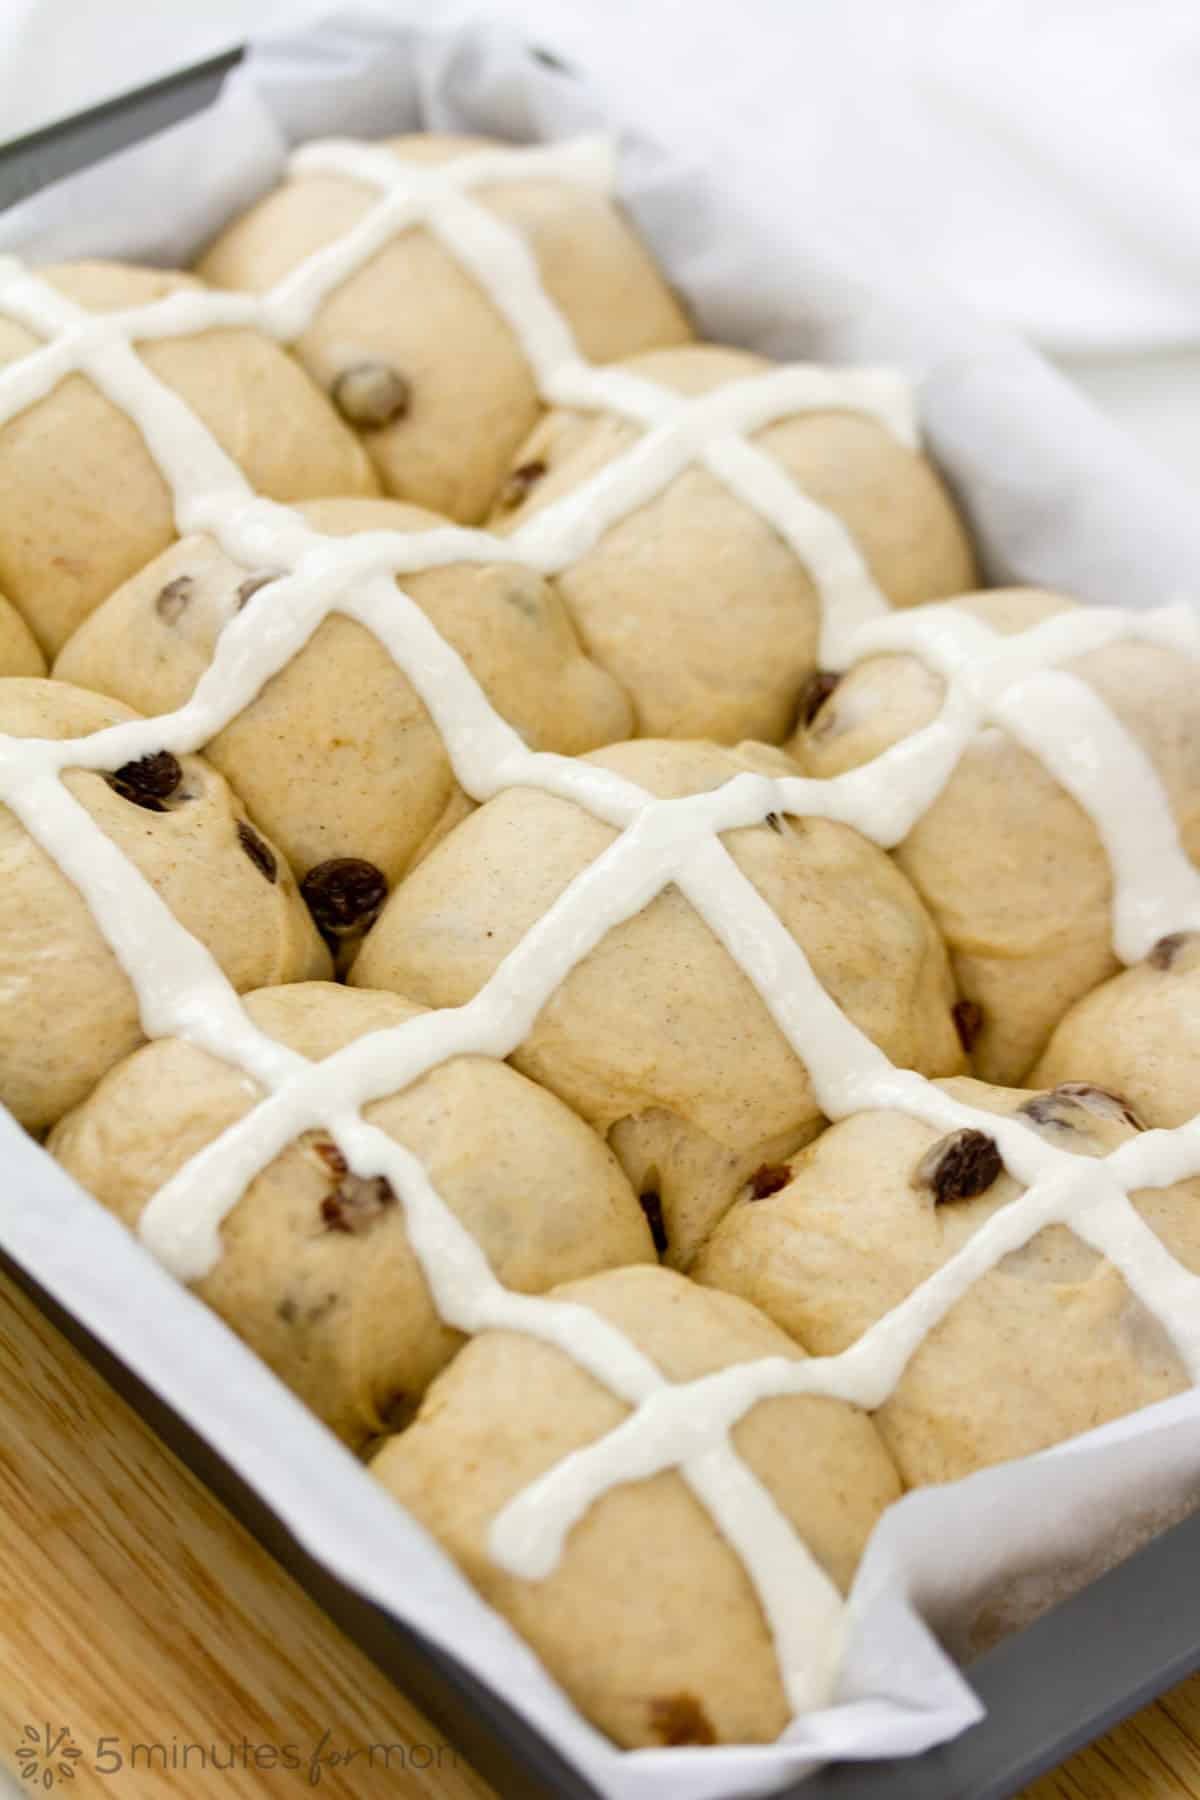 crosses made on hot cross buns with a flour and water paste piped in vertical and horizontal lines to create crosses on each bun